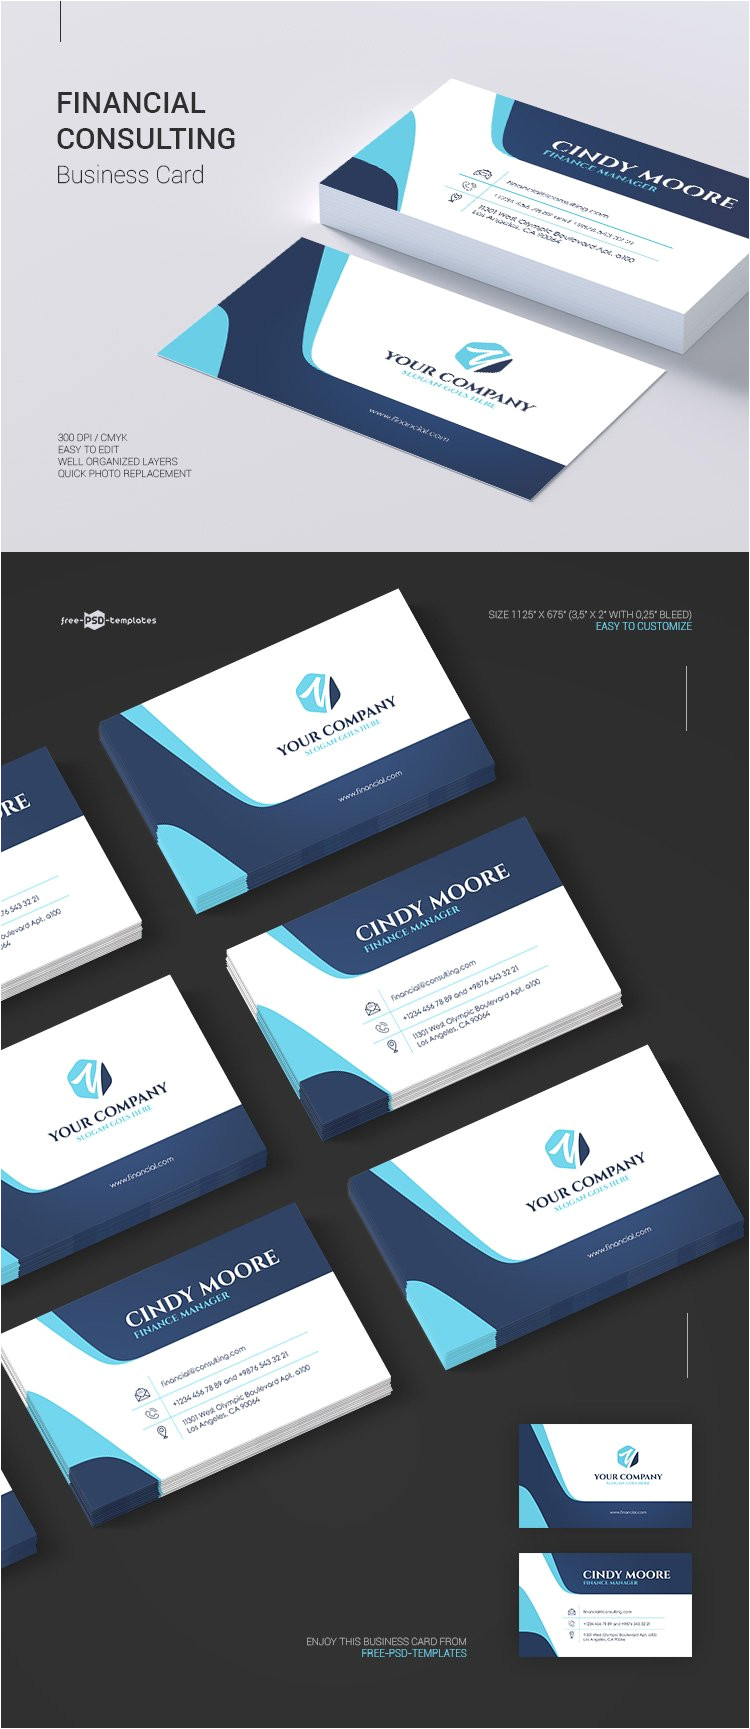 preview business card 1 free financial consulting business card in psd jpg